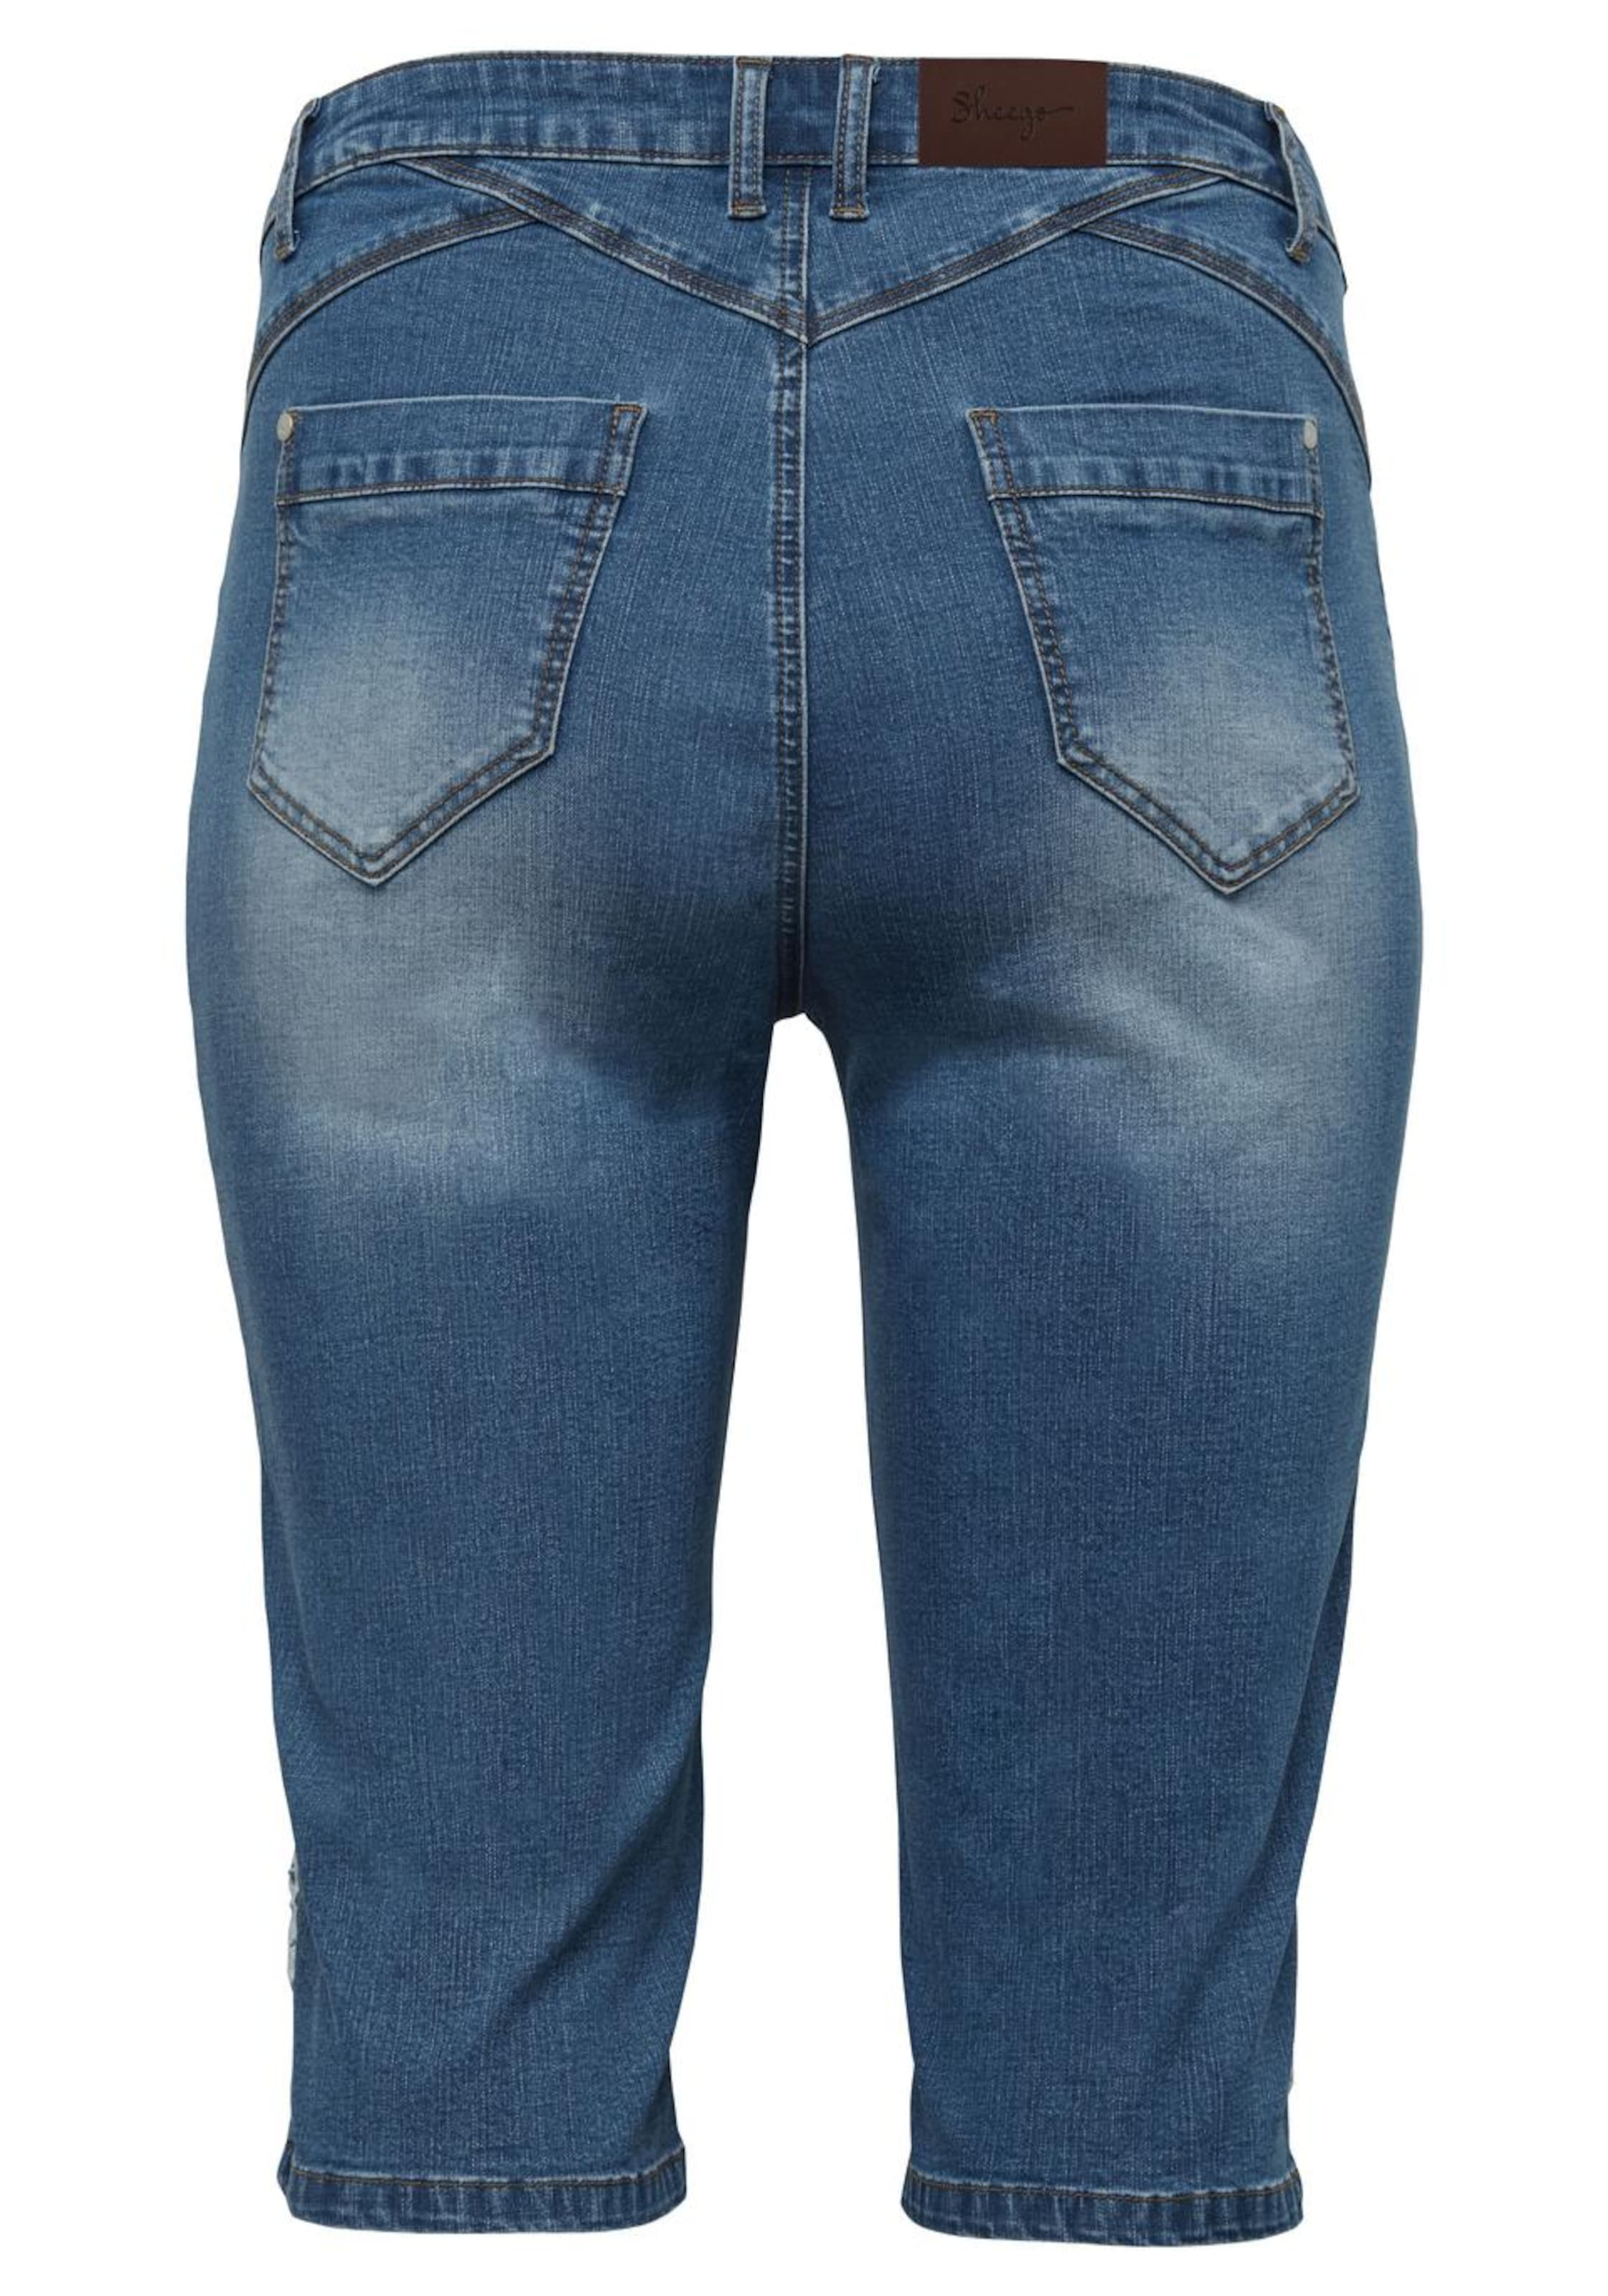 In Sheego Jeansbermudas Jeansbermudas Denim Sheego Jeansbermudas Sheego Blau Blau Denim Denim In QodCBWrex